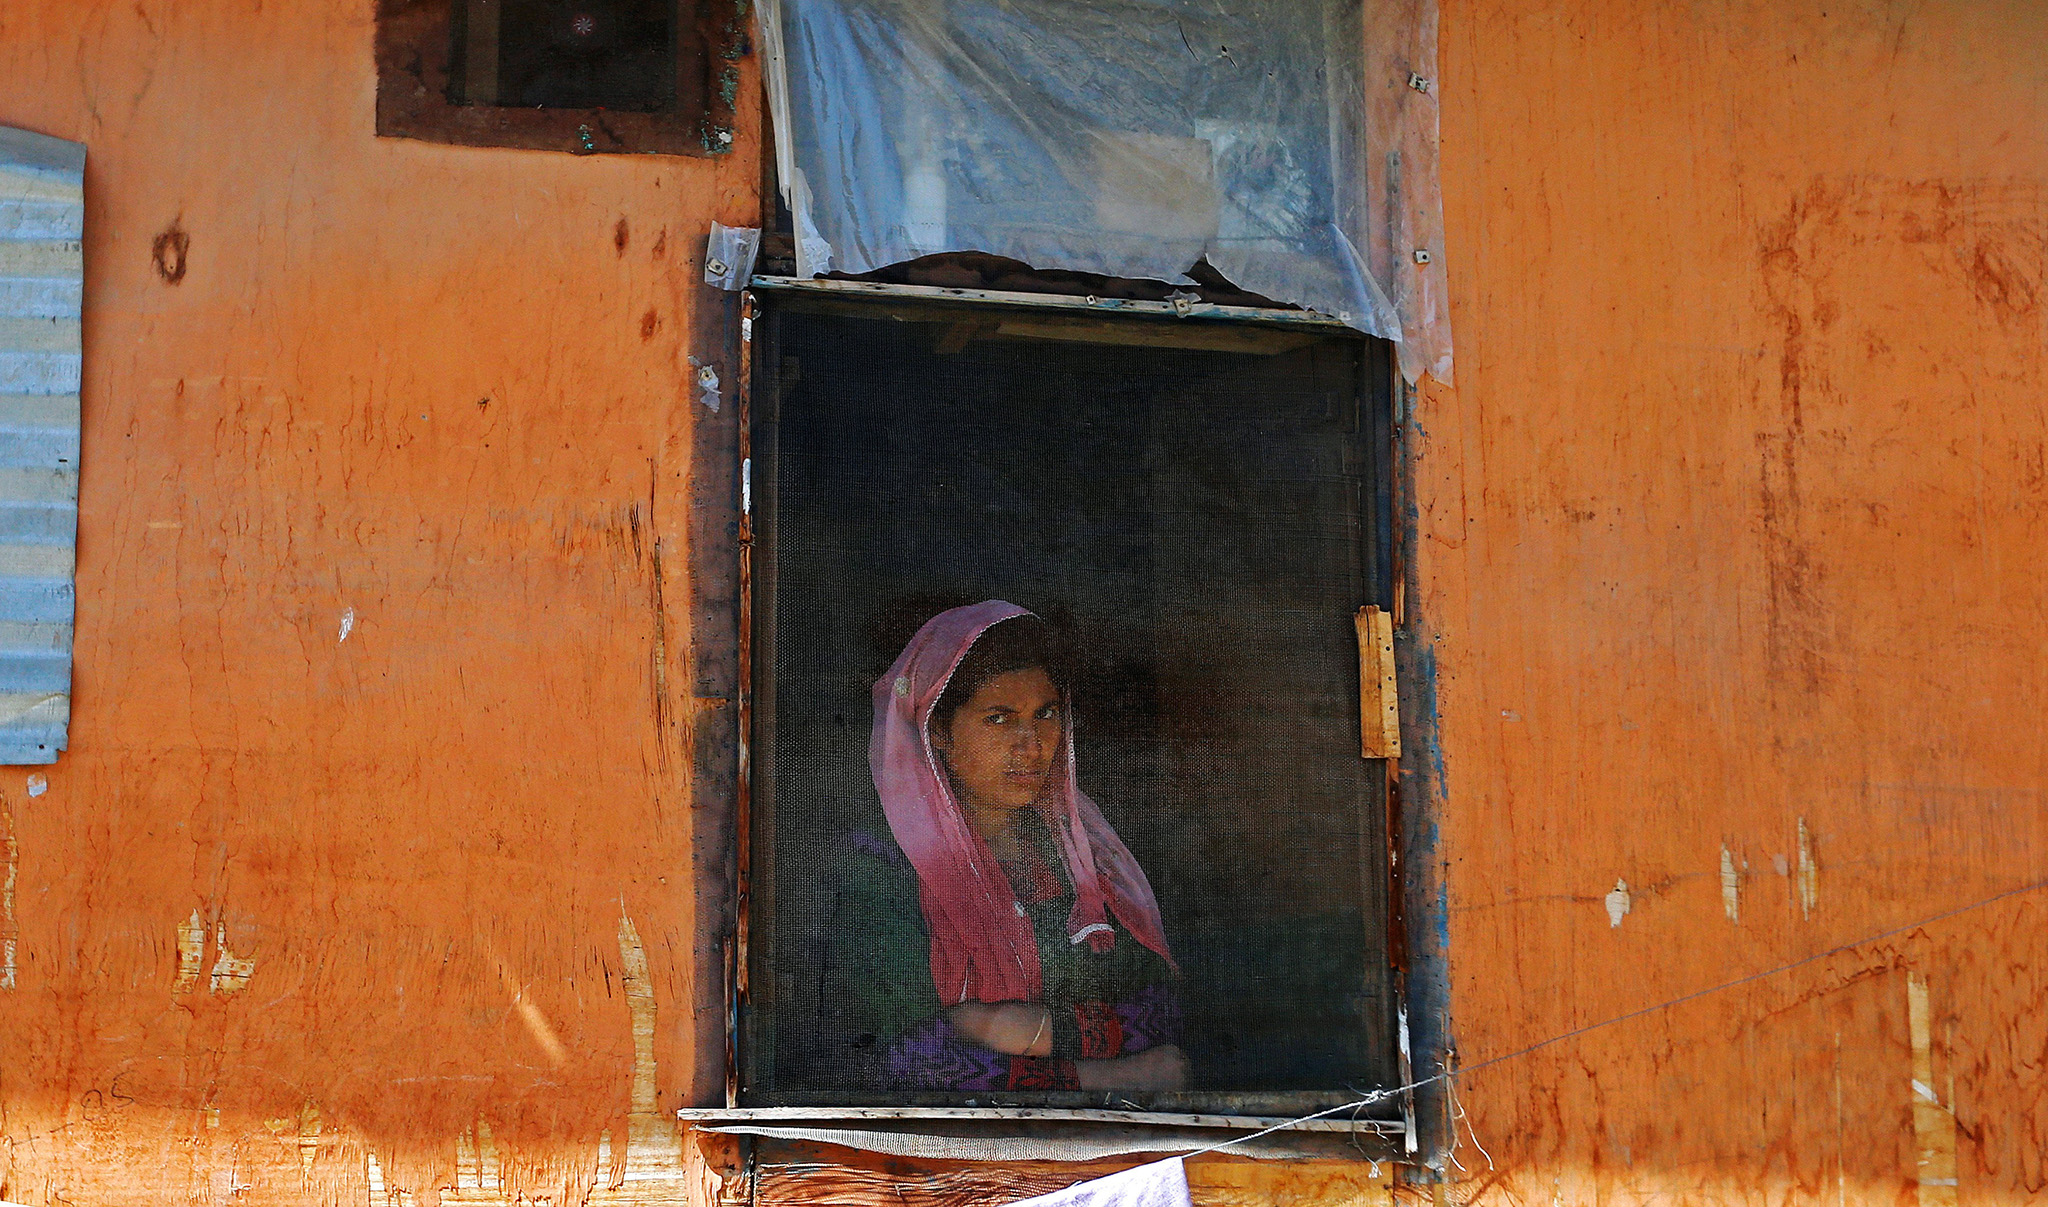 A woman looks out from a window in Srinagar,during a protest against the recent killings in Kashmir